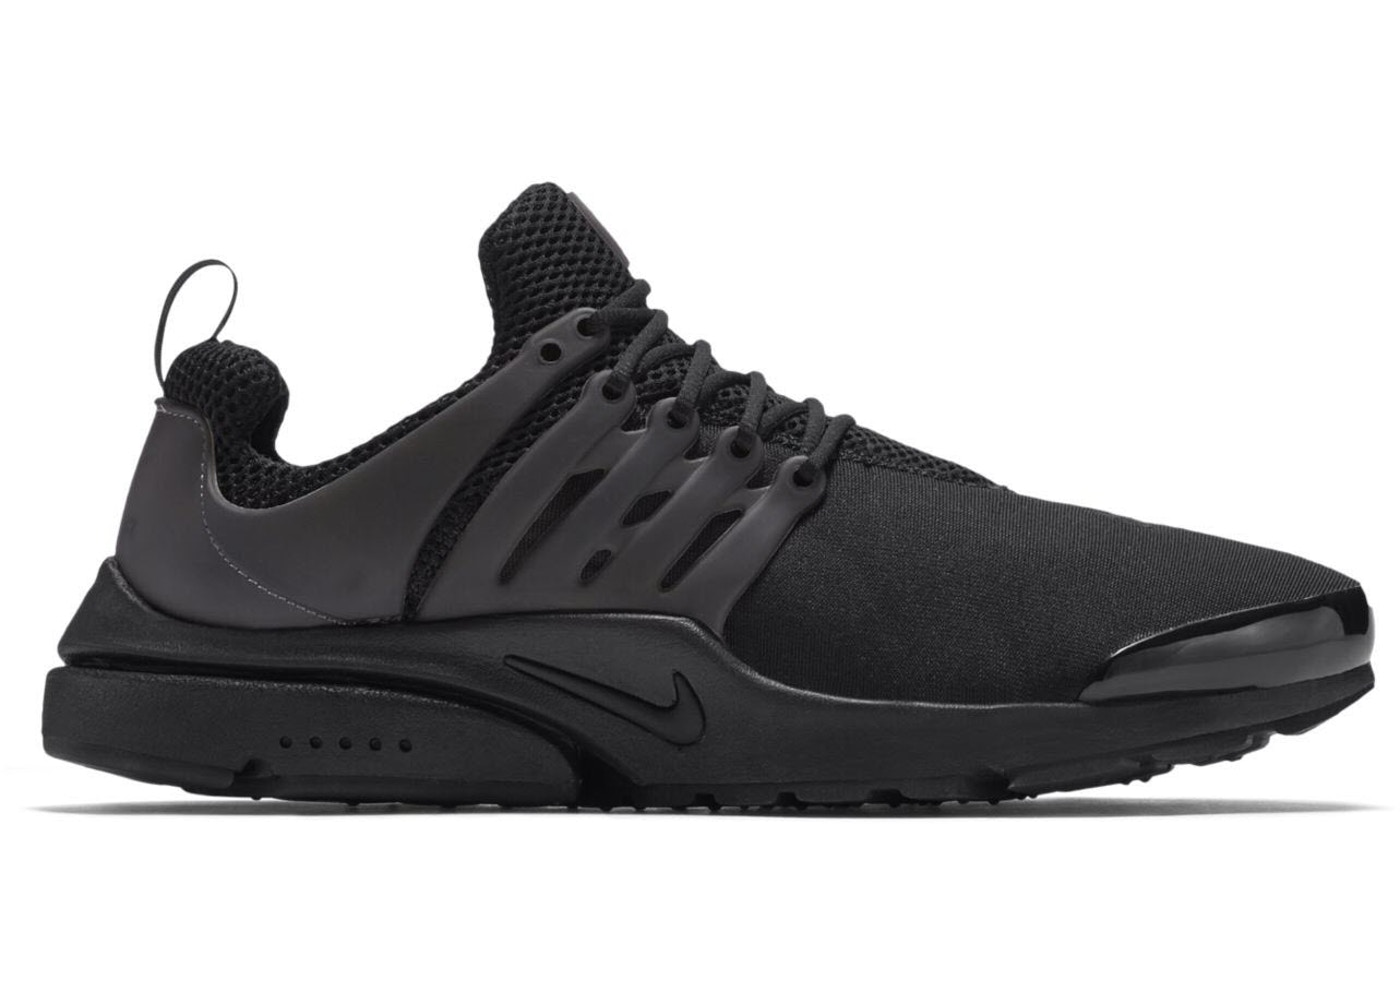 ナイキ NIKE エア スニーカー 【 AIR PRESTO TRIPLE BLACK BLACKBLACK 】 メンズ